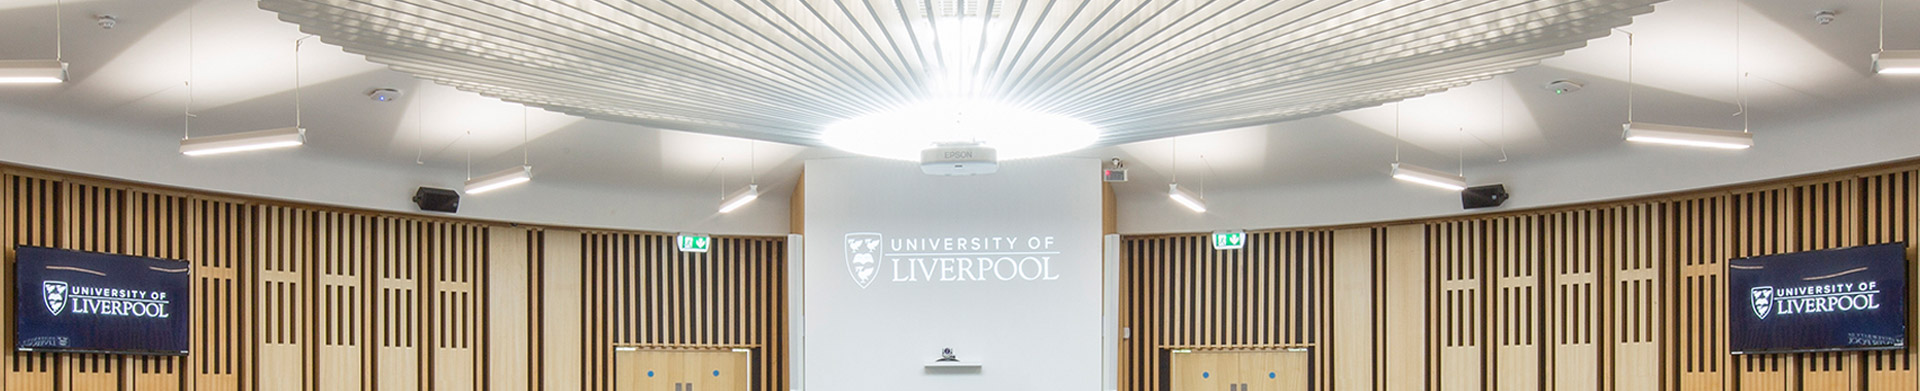 University of Liverpool Brett Building